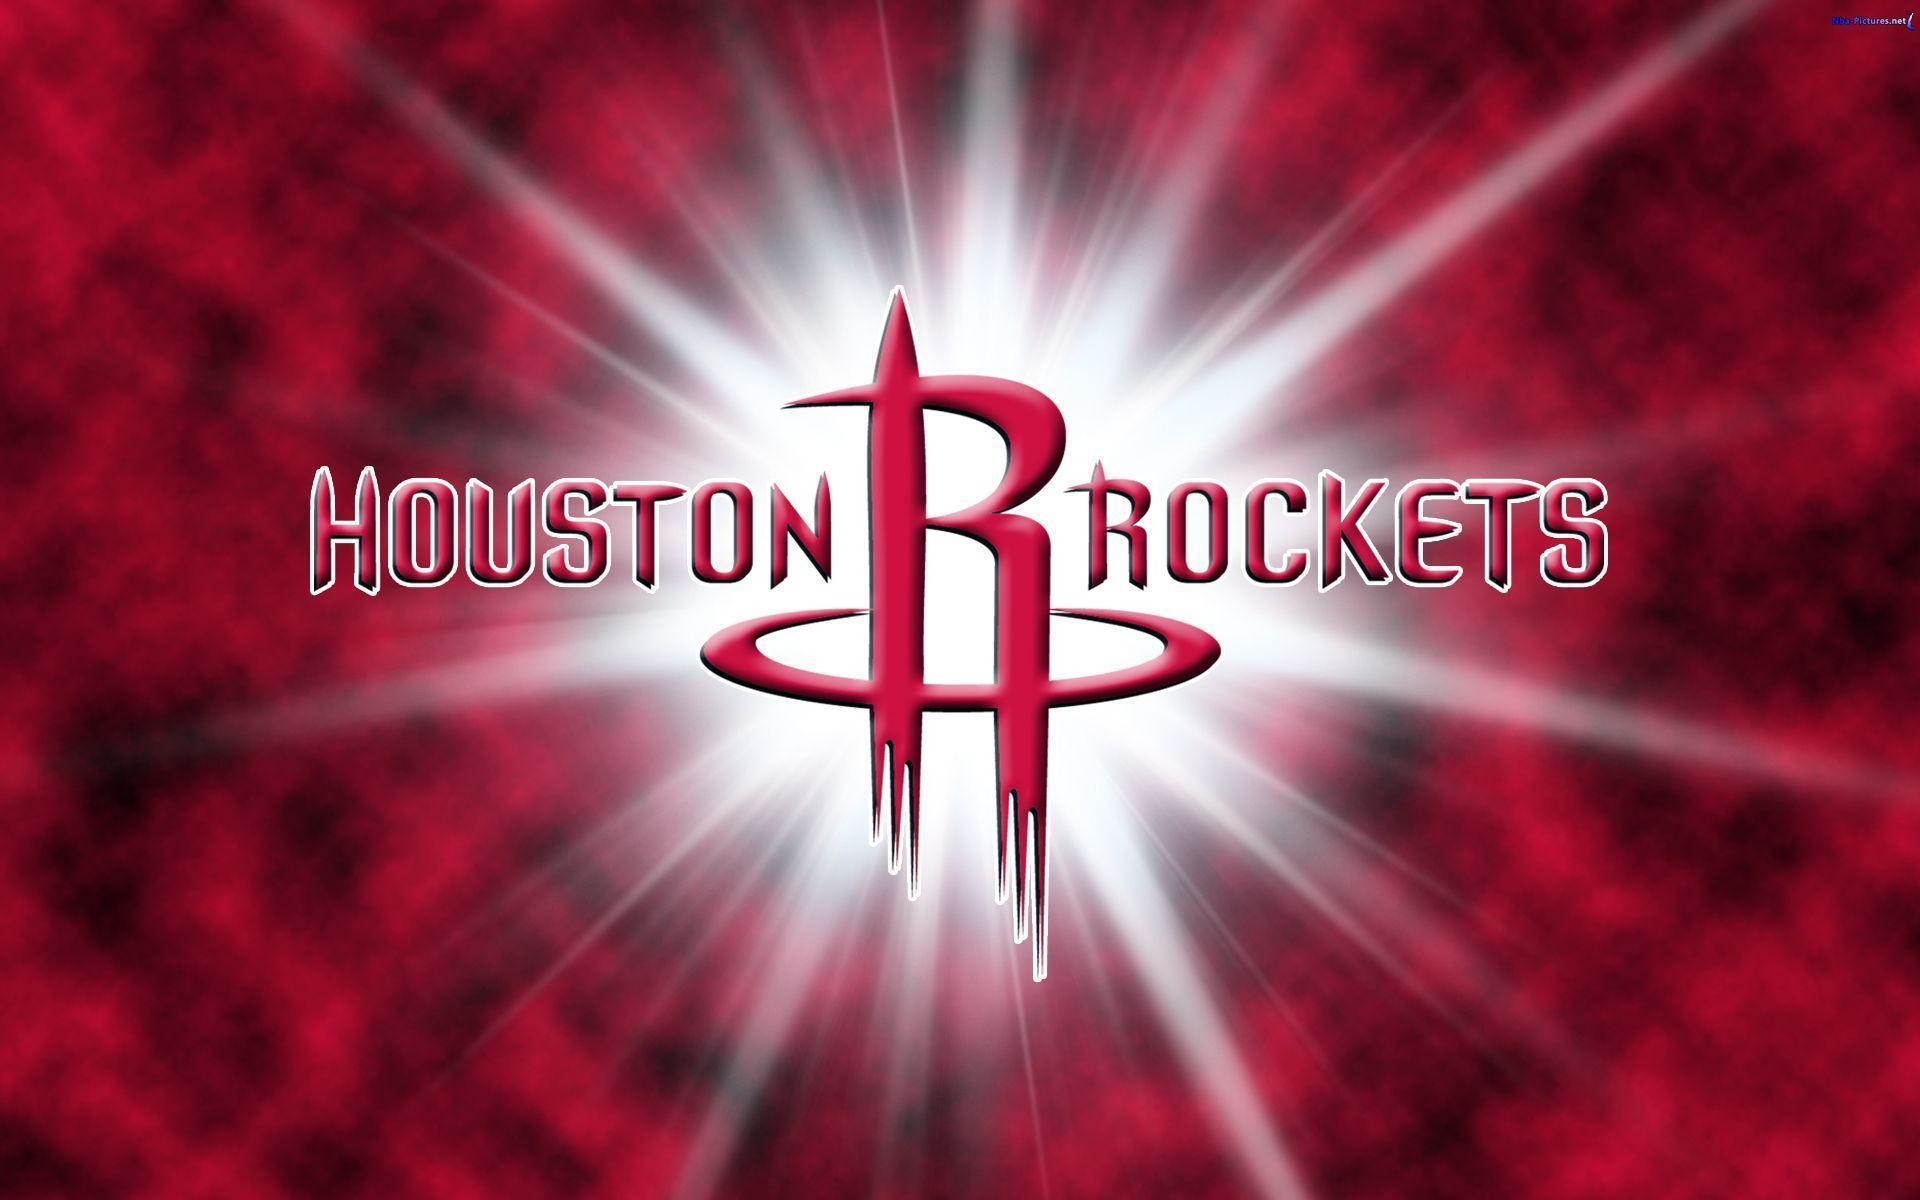 … houston rockets wallpapers wallpaper cave …